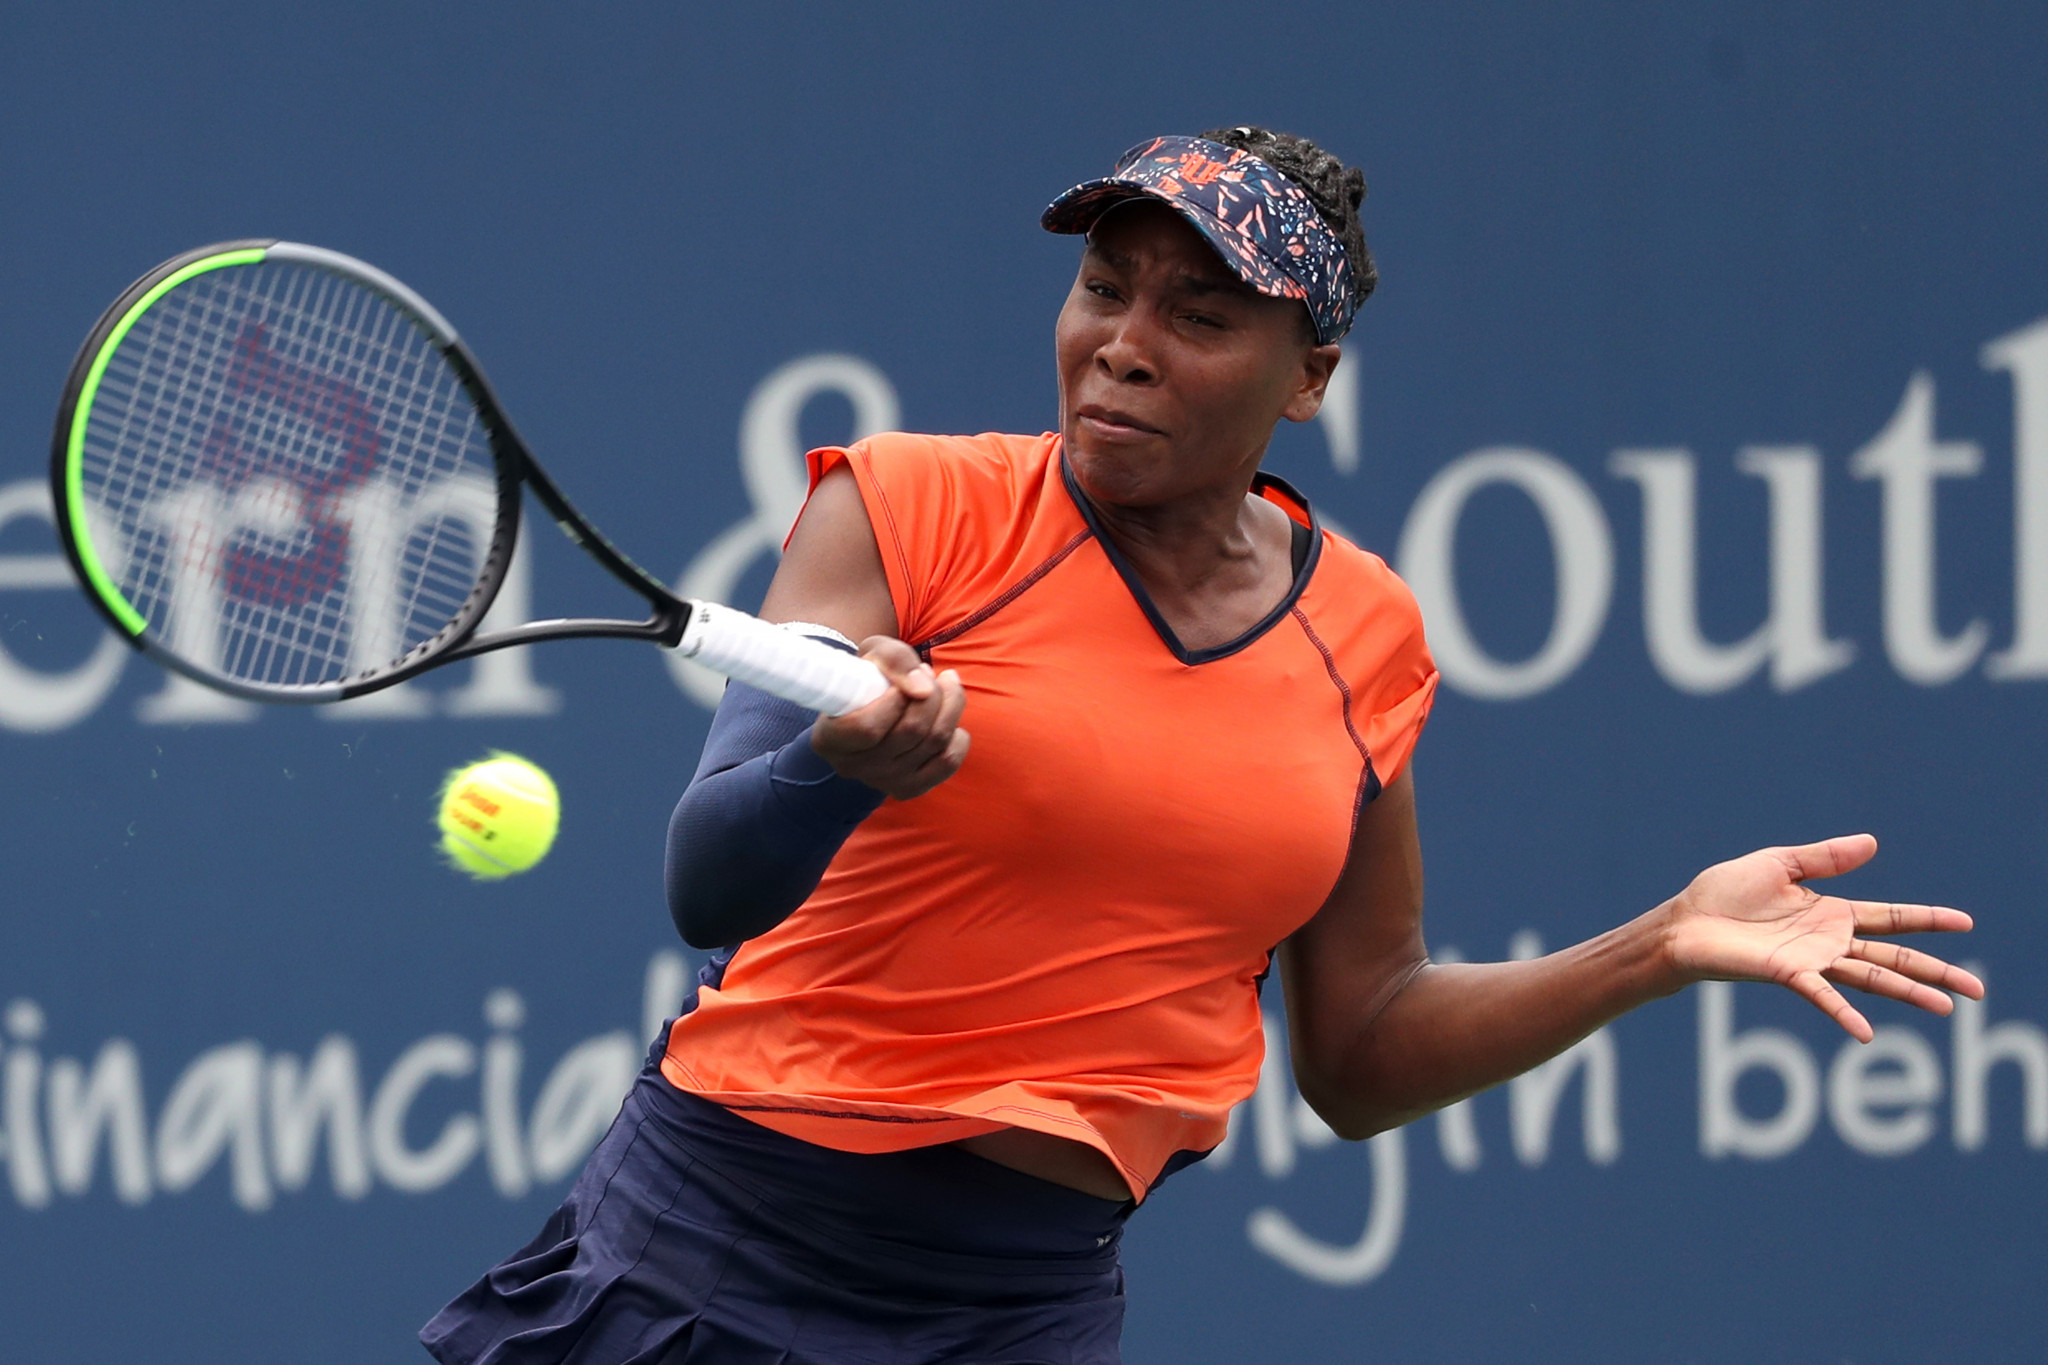 Venus Williams enjoyed a welcome victory, defeating fellow American Lauren Davis in straight sets ©Getty Images